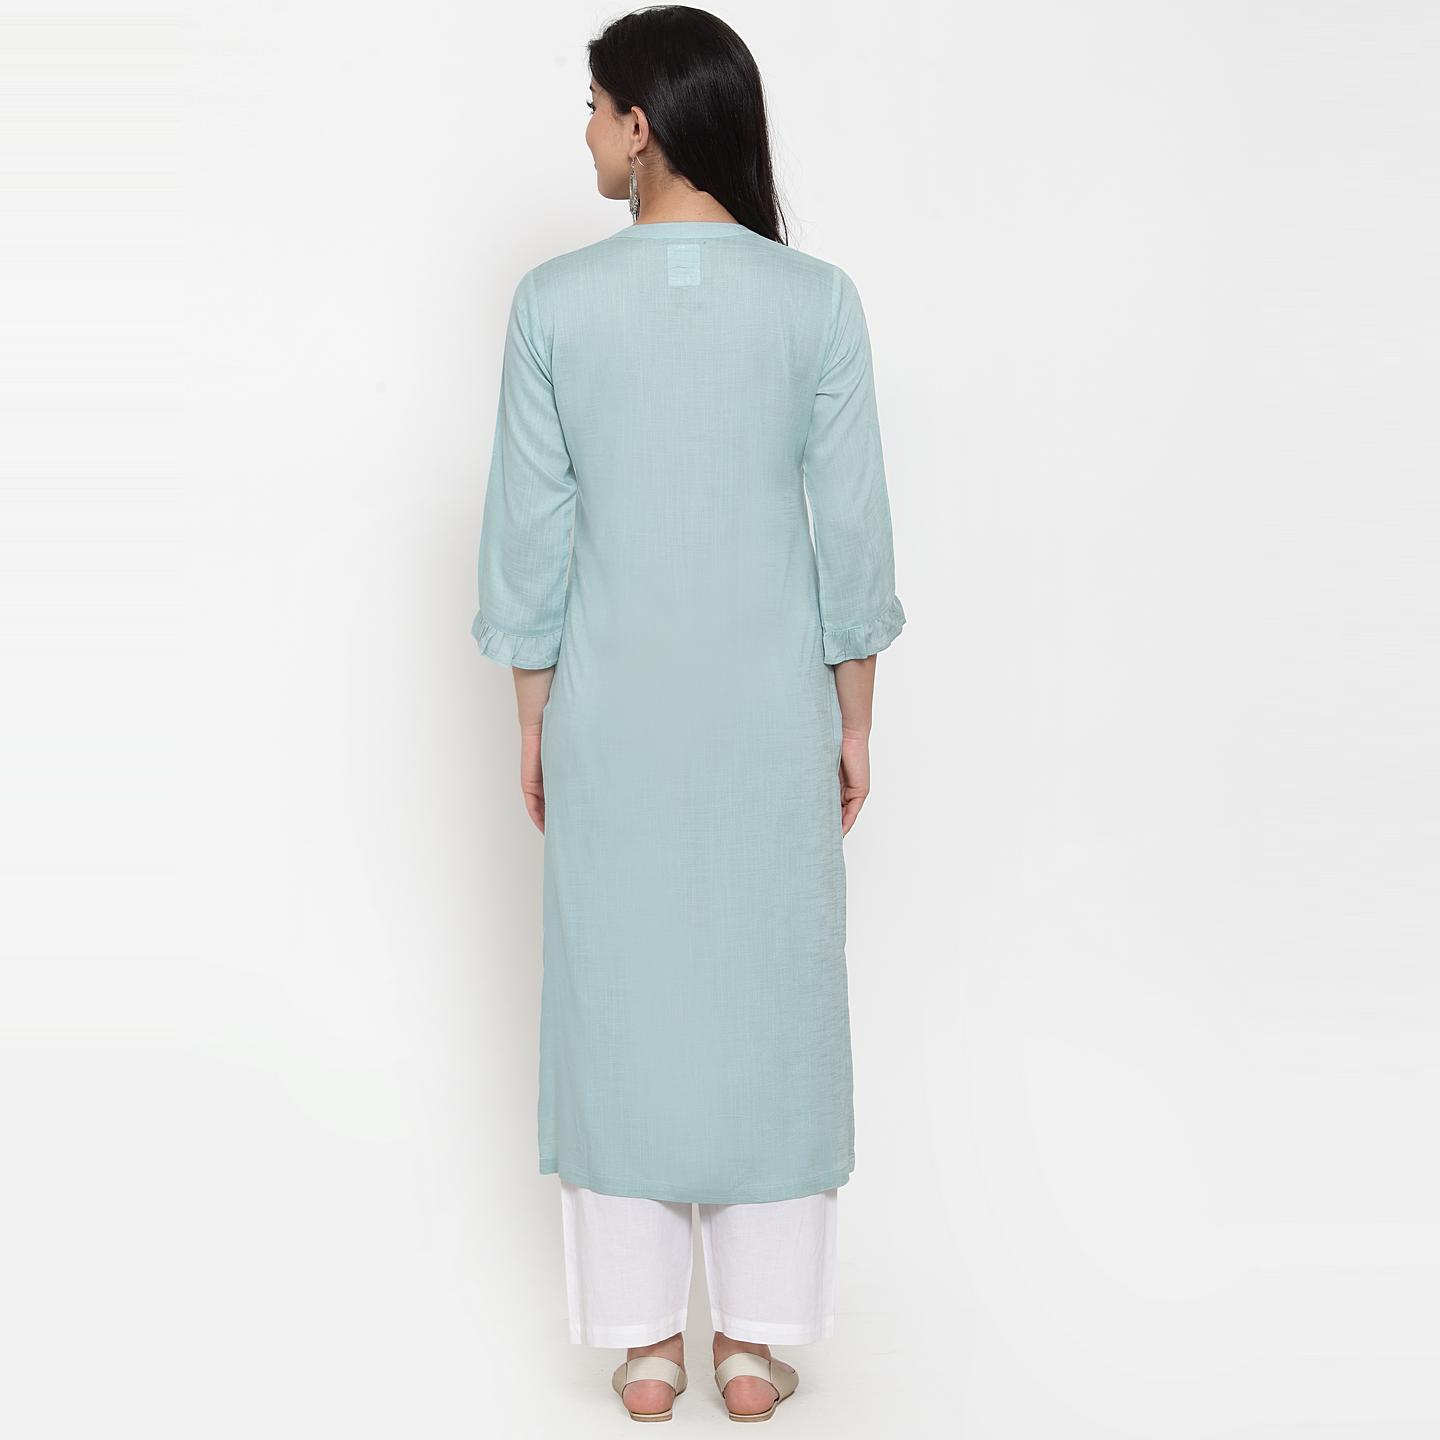 Amazing Blue Colored Party Wear Embroidered Calf Length Straight Viscose-Rayon Kurti